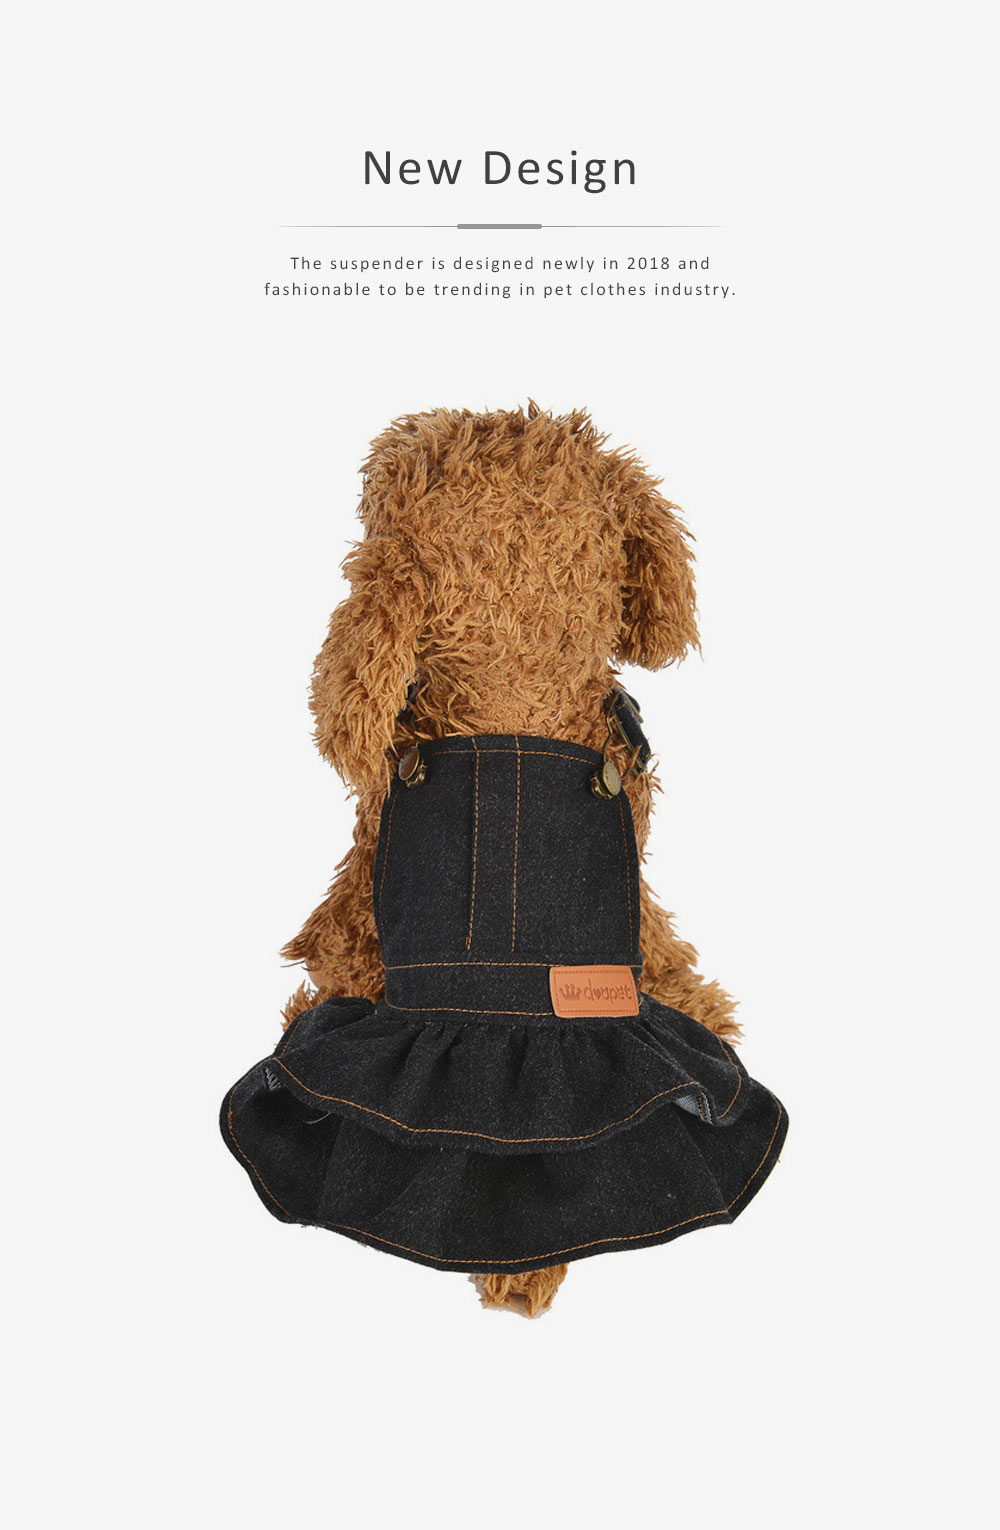 Jeans Suspender Skirt for Dogs New-style Pet Clothes in 2019 Used During Autumn and Winter Dog Clothes 2